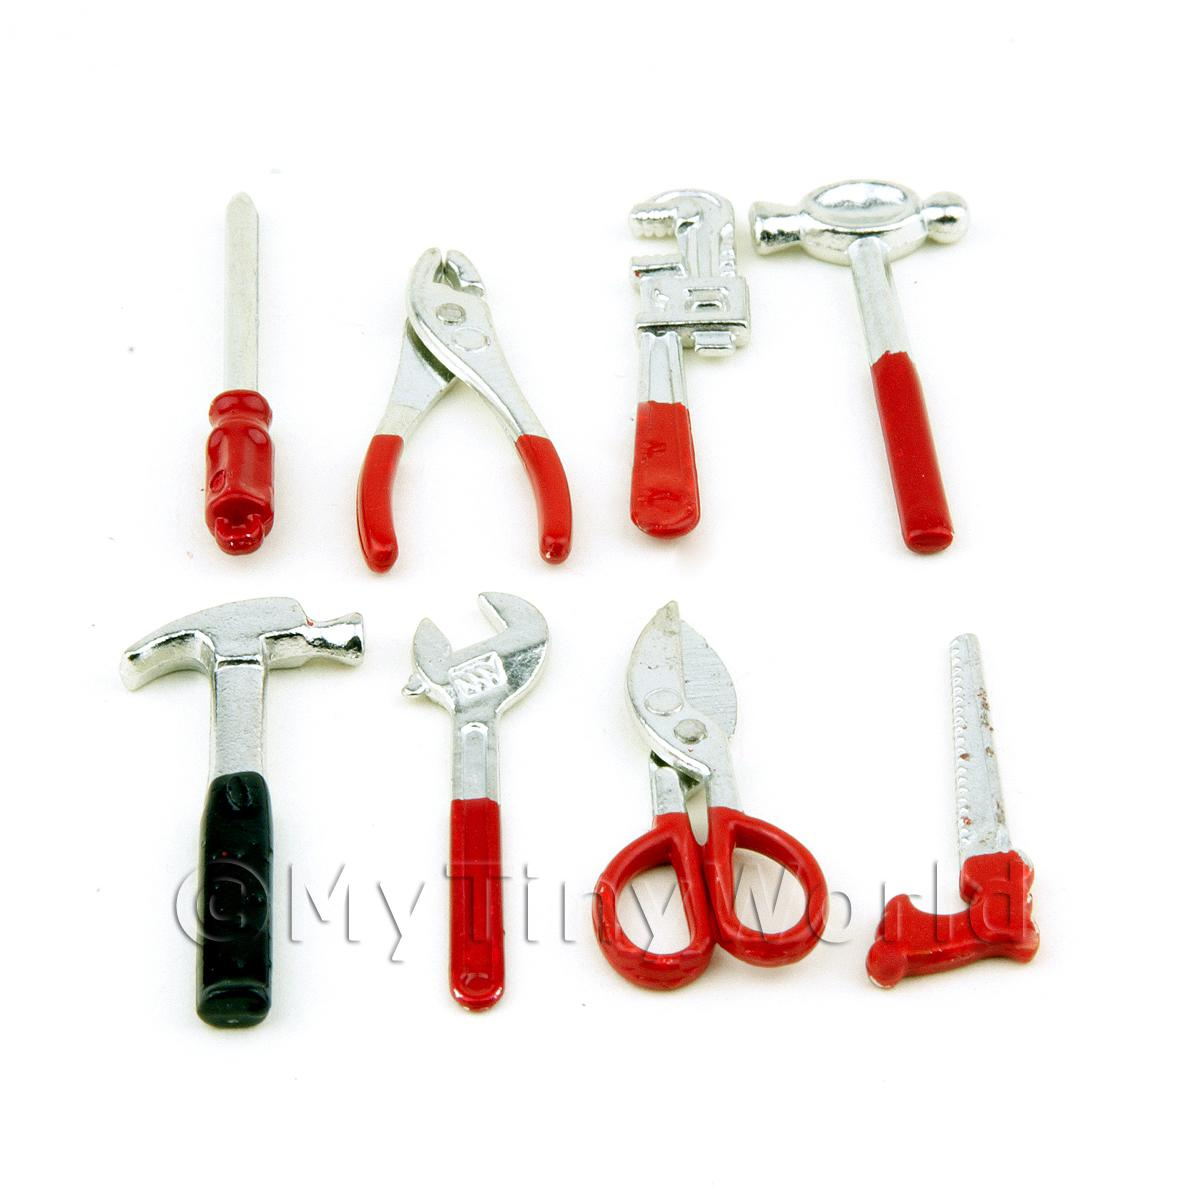 Dolls House Miniature 8 Piece Metal DIY Tool Set